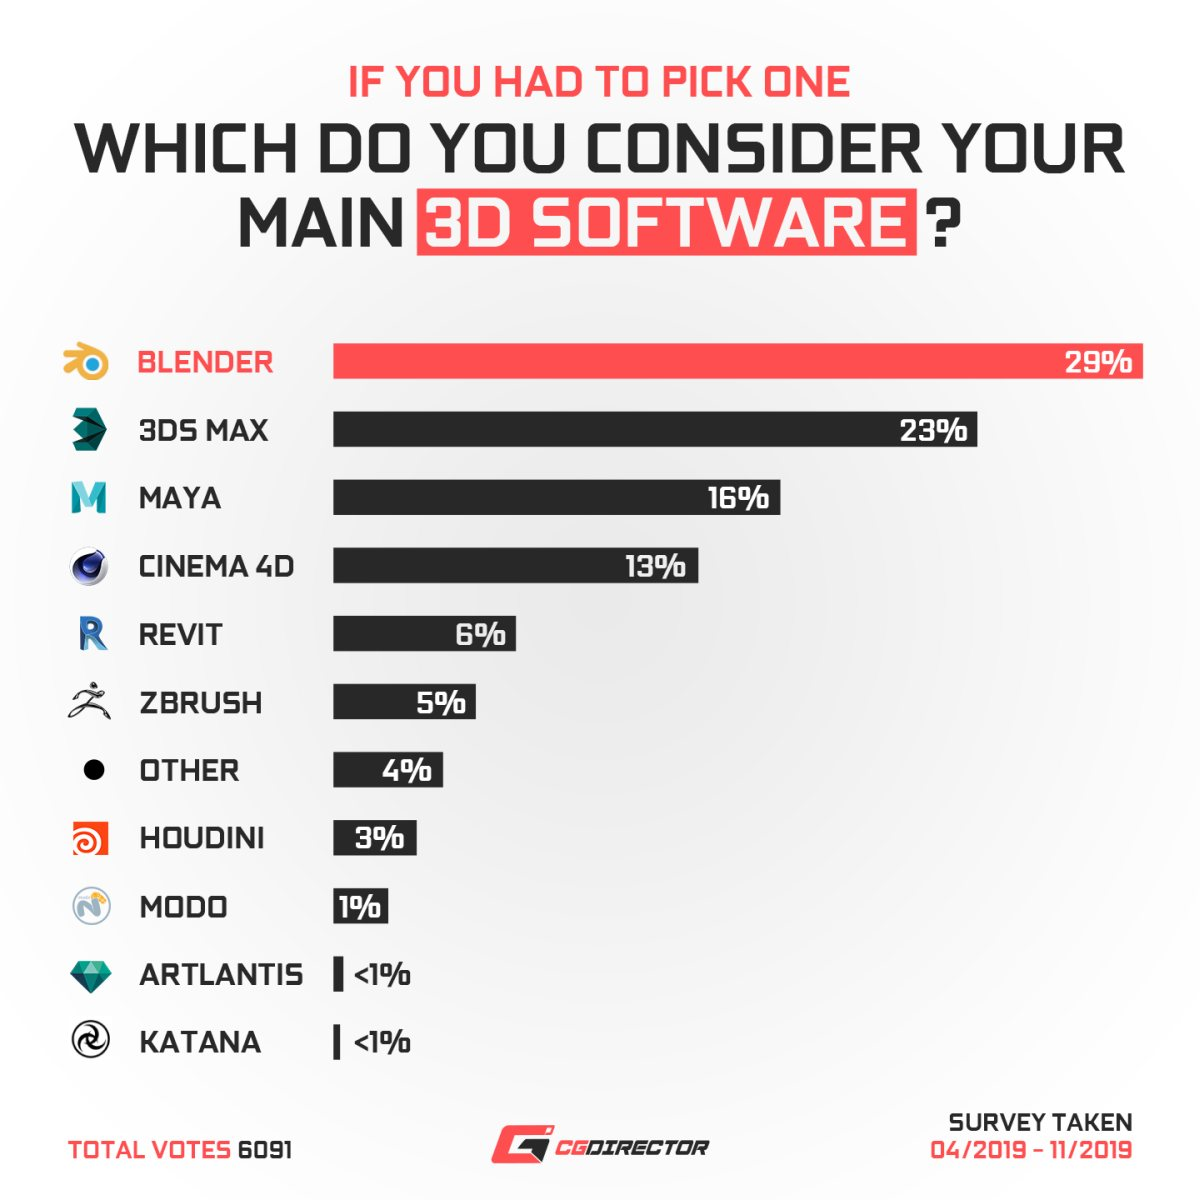 What is your main 3D-Software